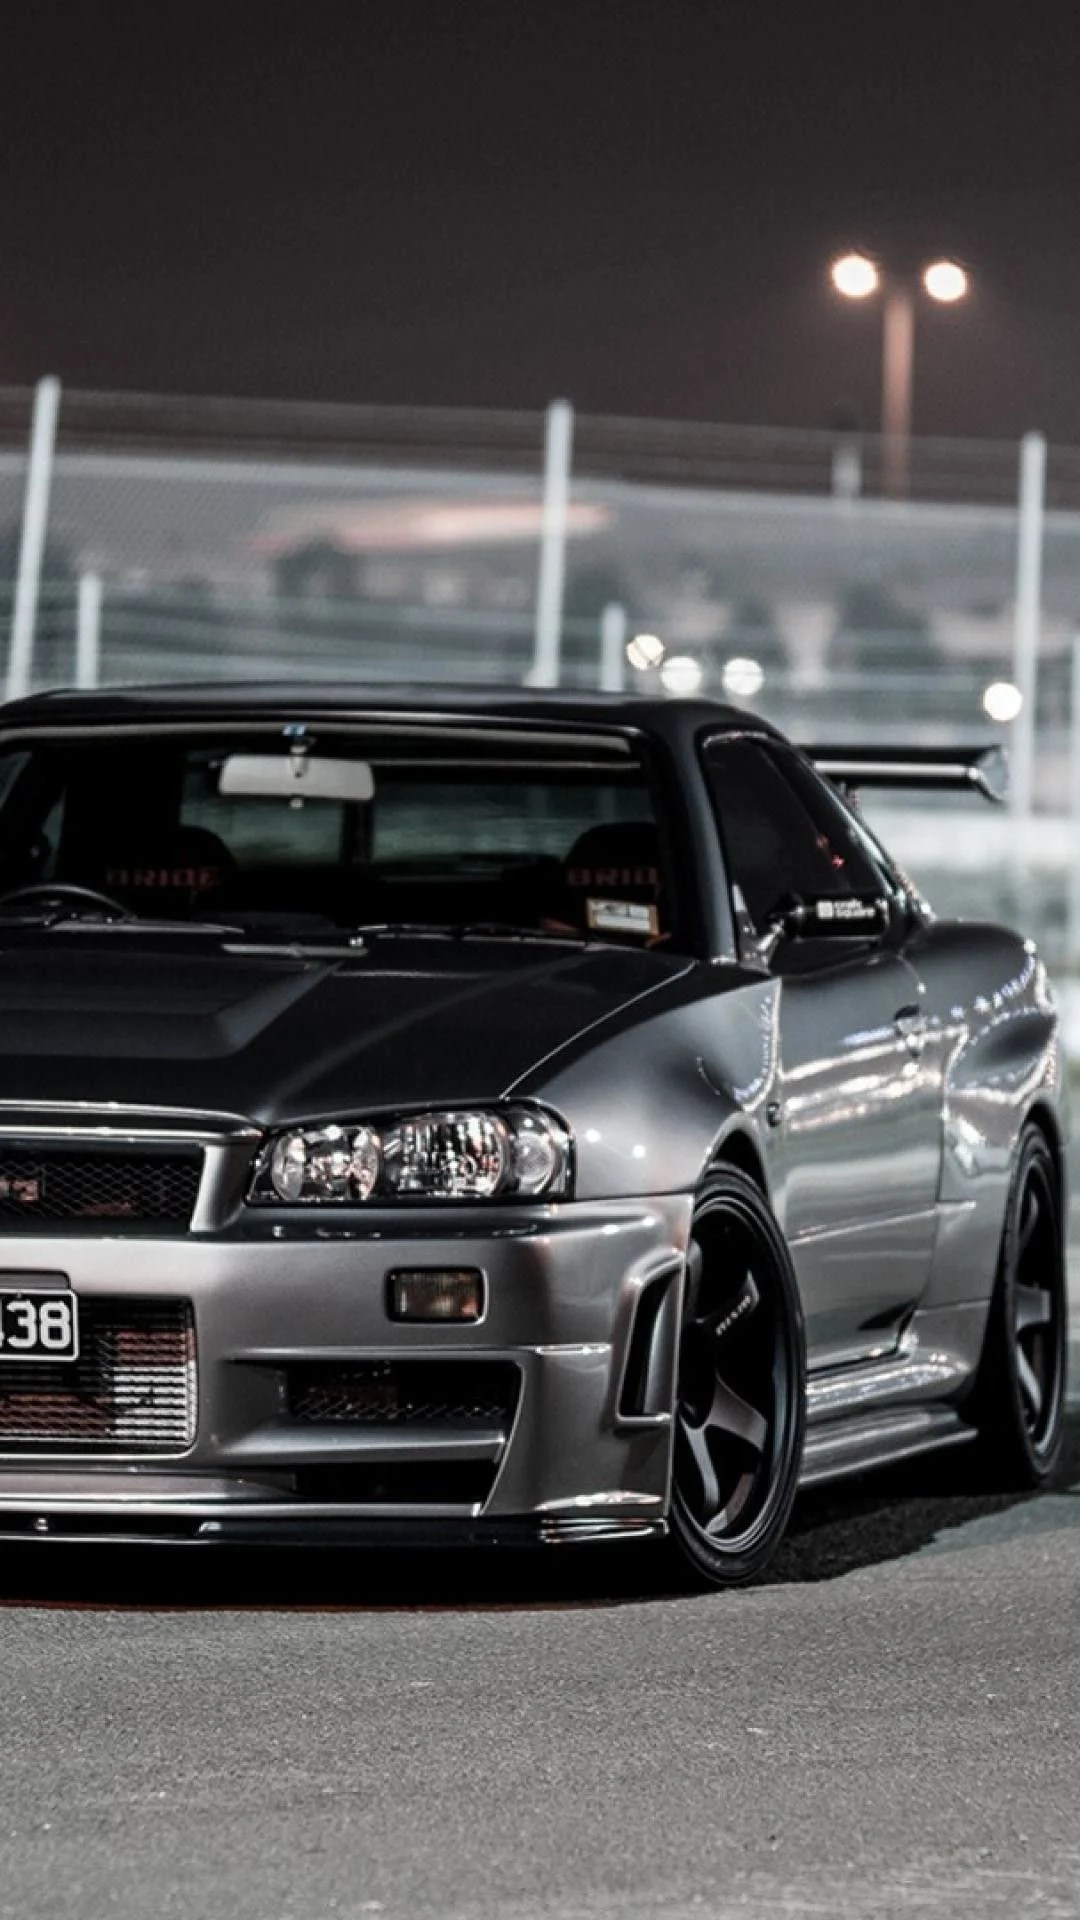 Sizing also makes later remov. Jdm Phone Wallpapers Top Free Jdm Phone Backgrounds Wallpaperaccess